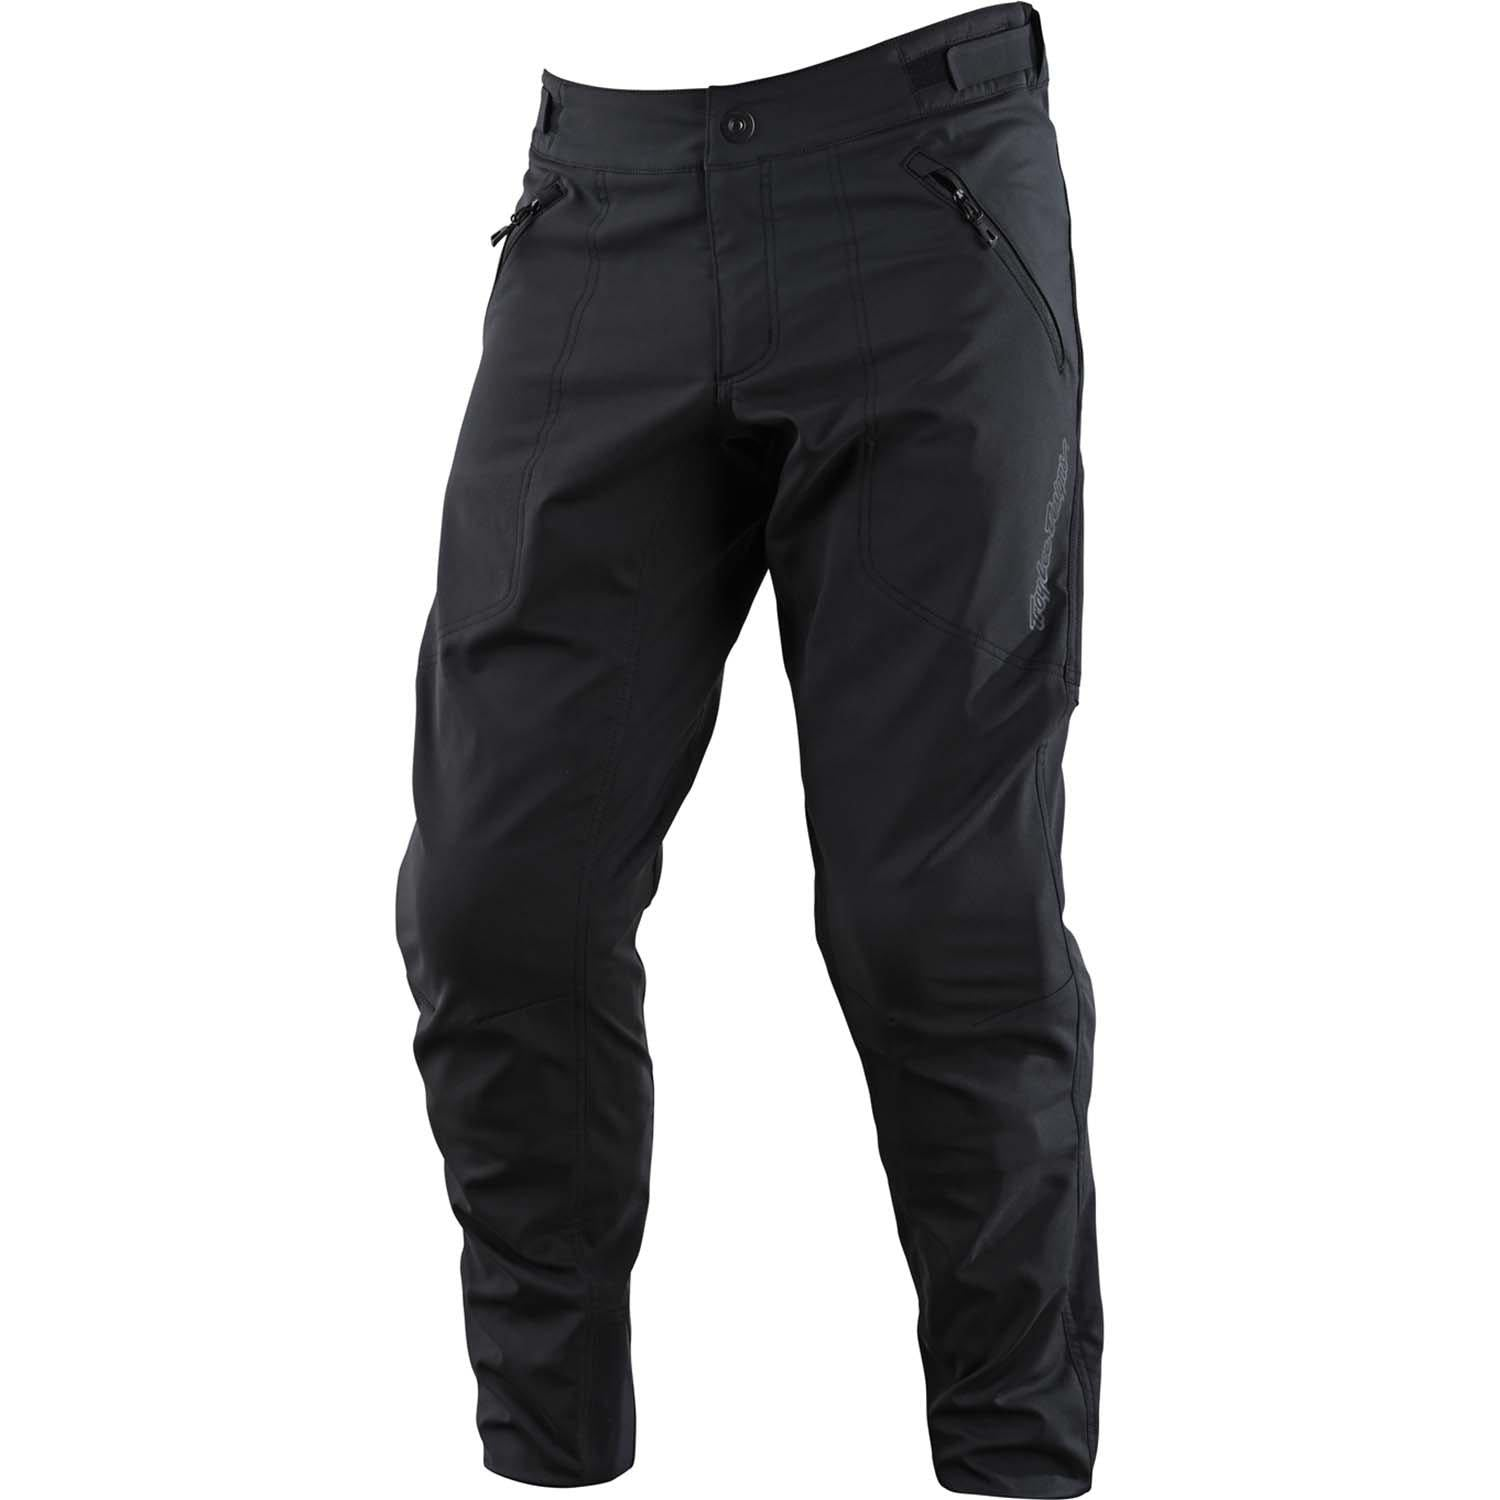 Troy Lee Designs-Troy Lee Designs Skyline Pants-Black-28-TLD255786011-saddleback-elite-performance-cycling